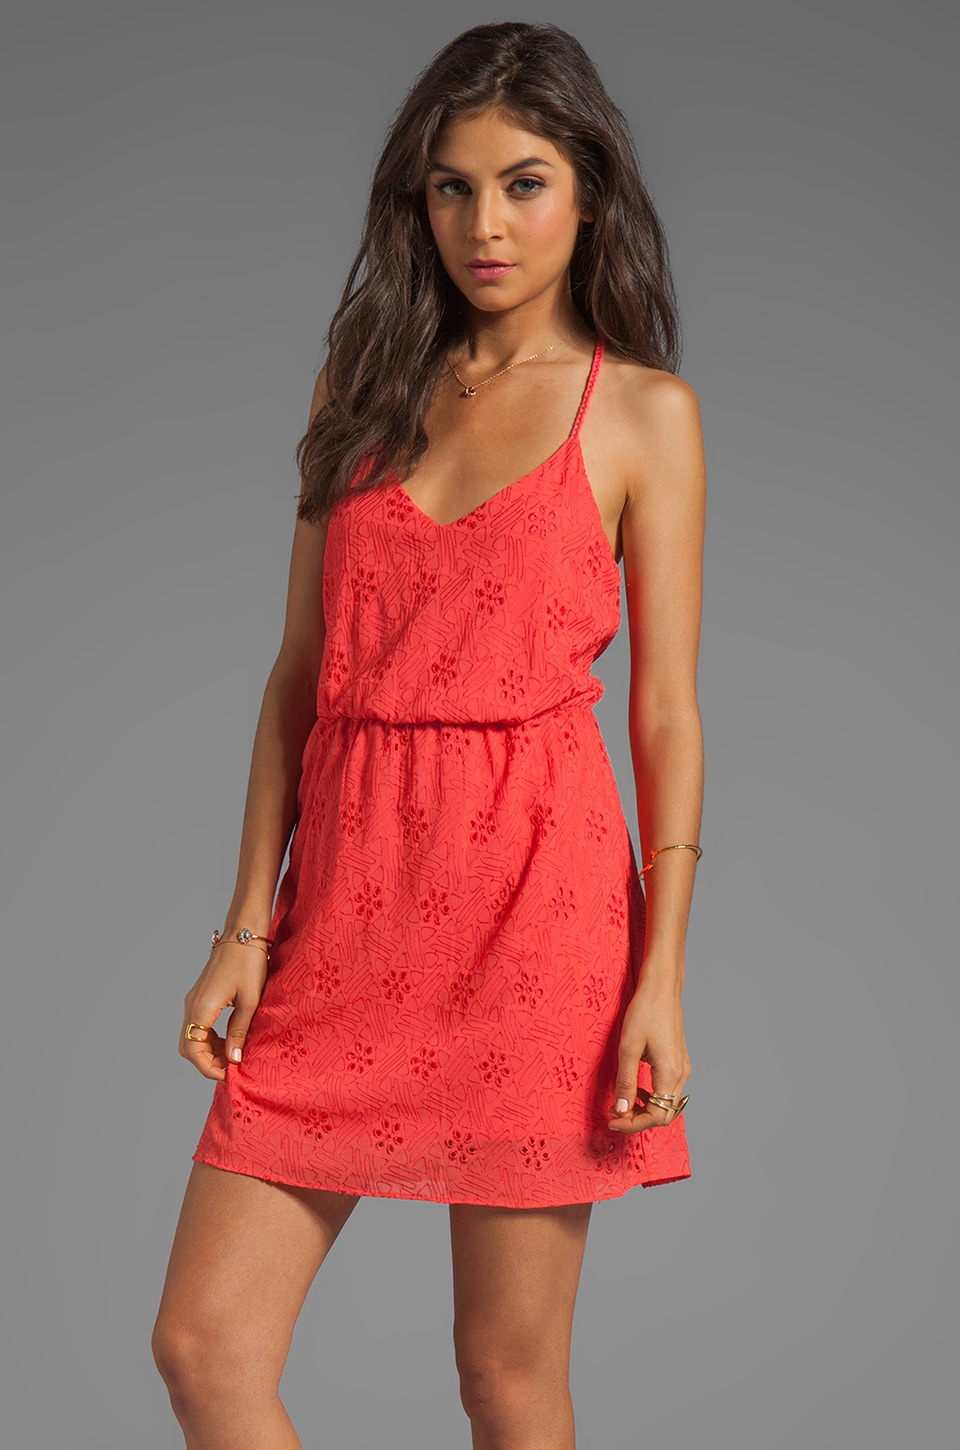 Dolce Vita Darah Eyelet Embroidery Mini Dress in Coral